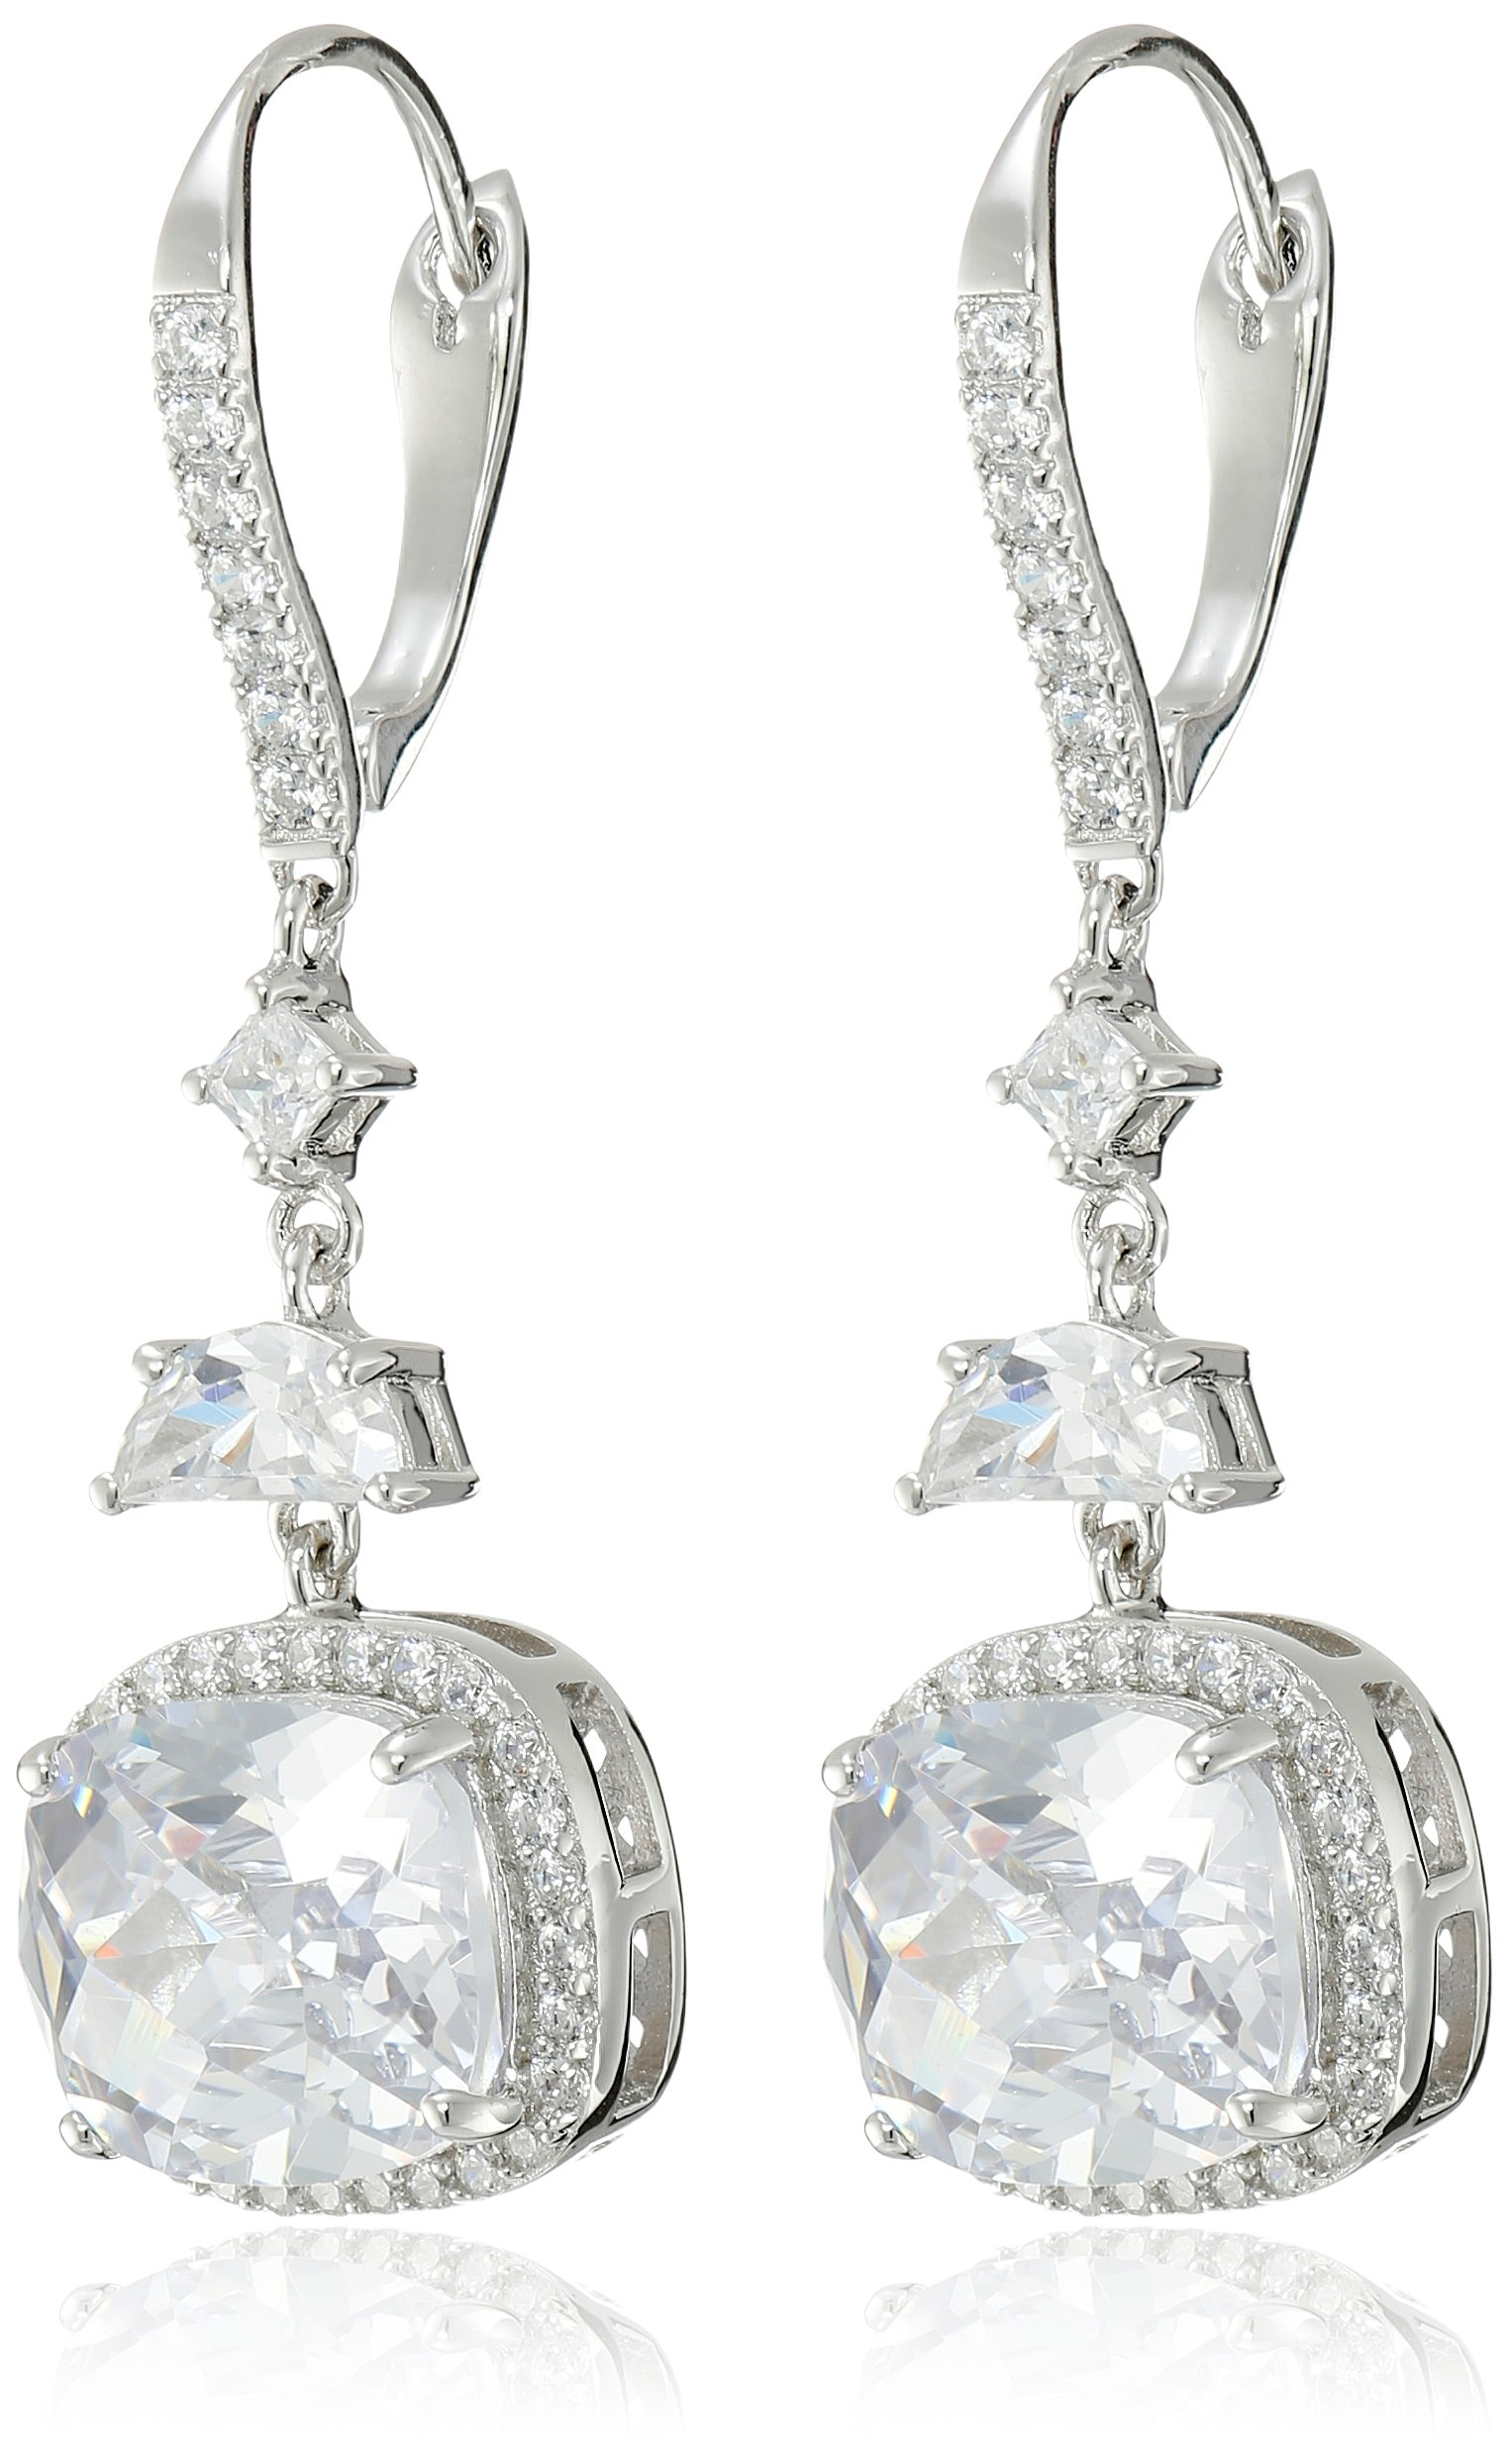 Charles Winston, Sterling Silver, Cubic Zirconia Cushion Cut, Checkerboard Faceted, Drop Earrings, 16.00 ct. tw.